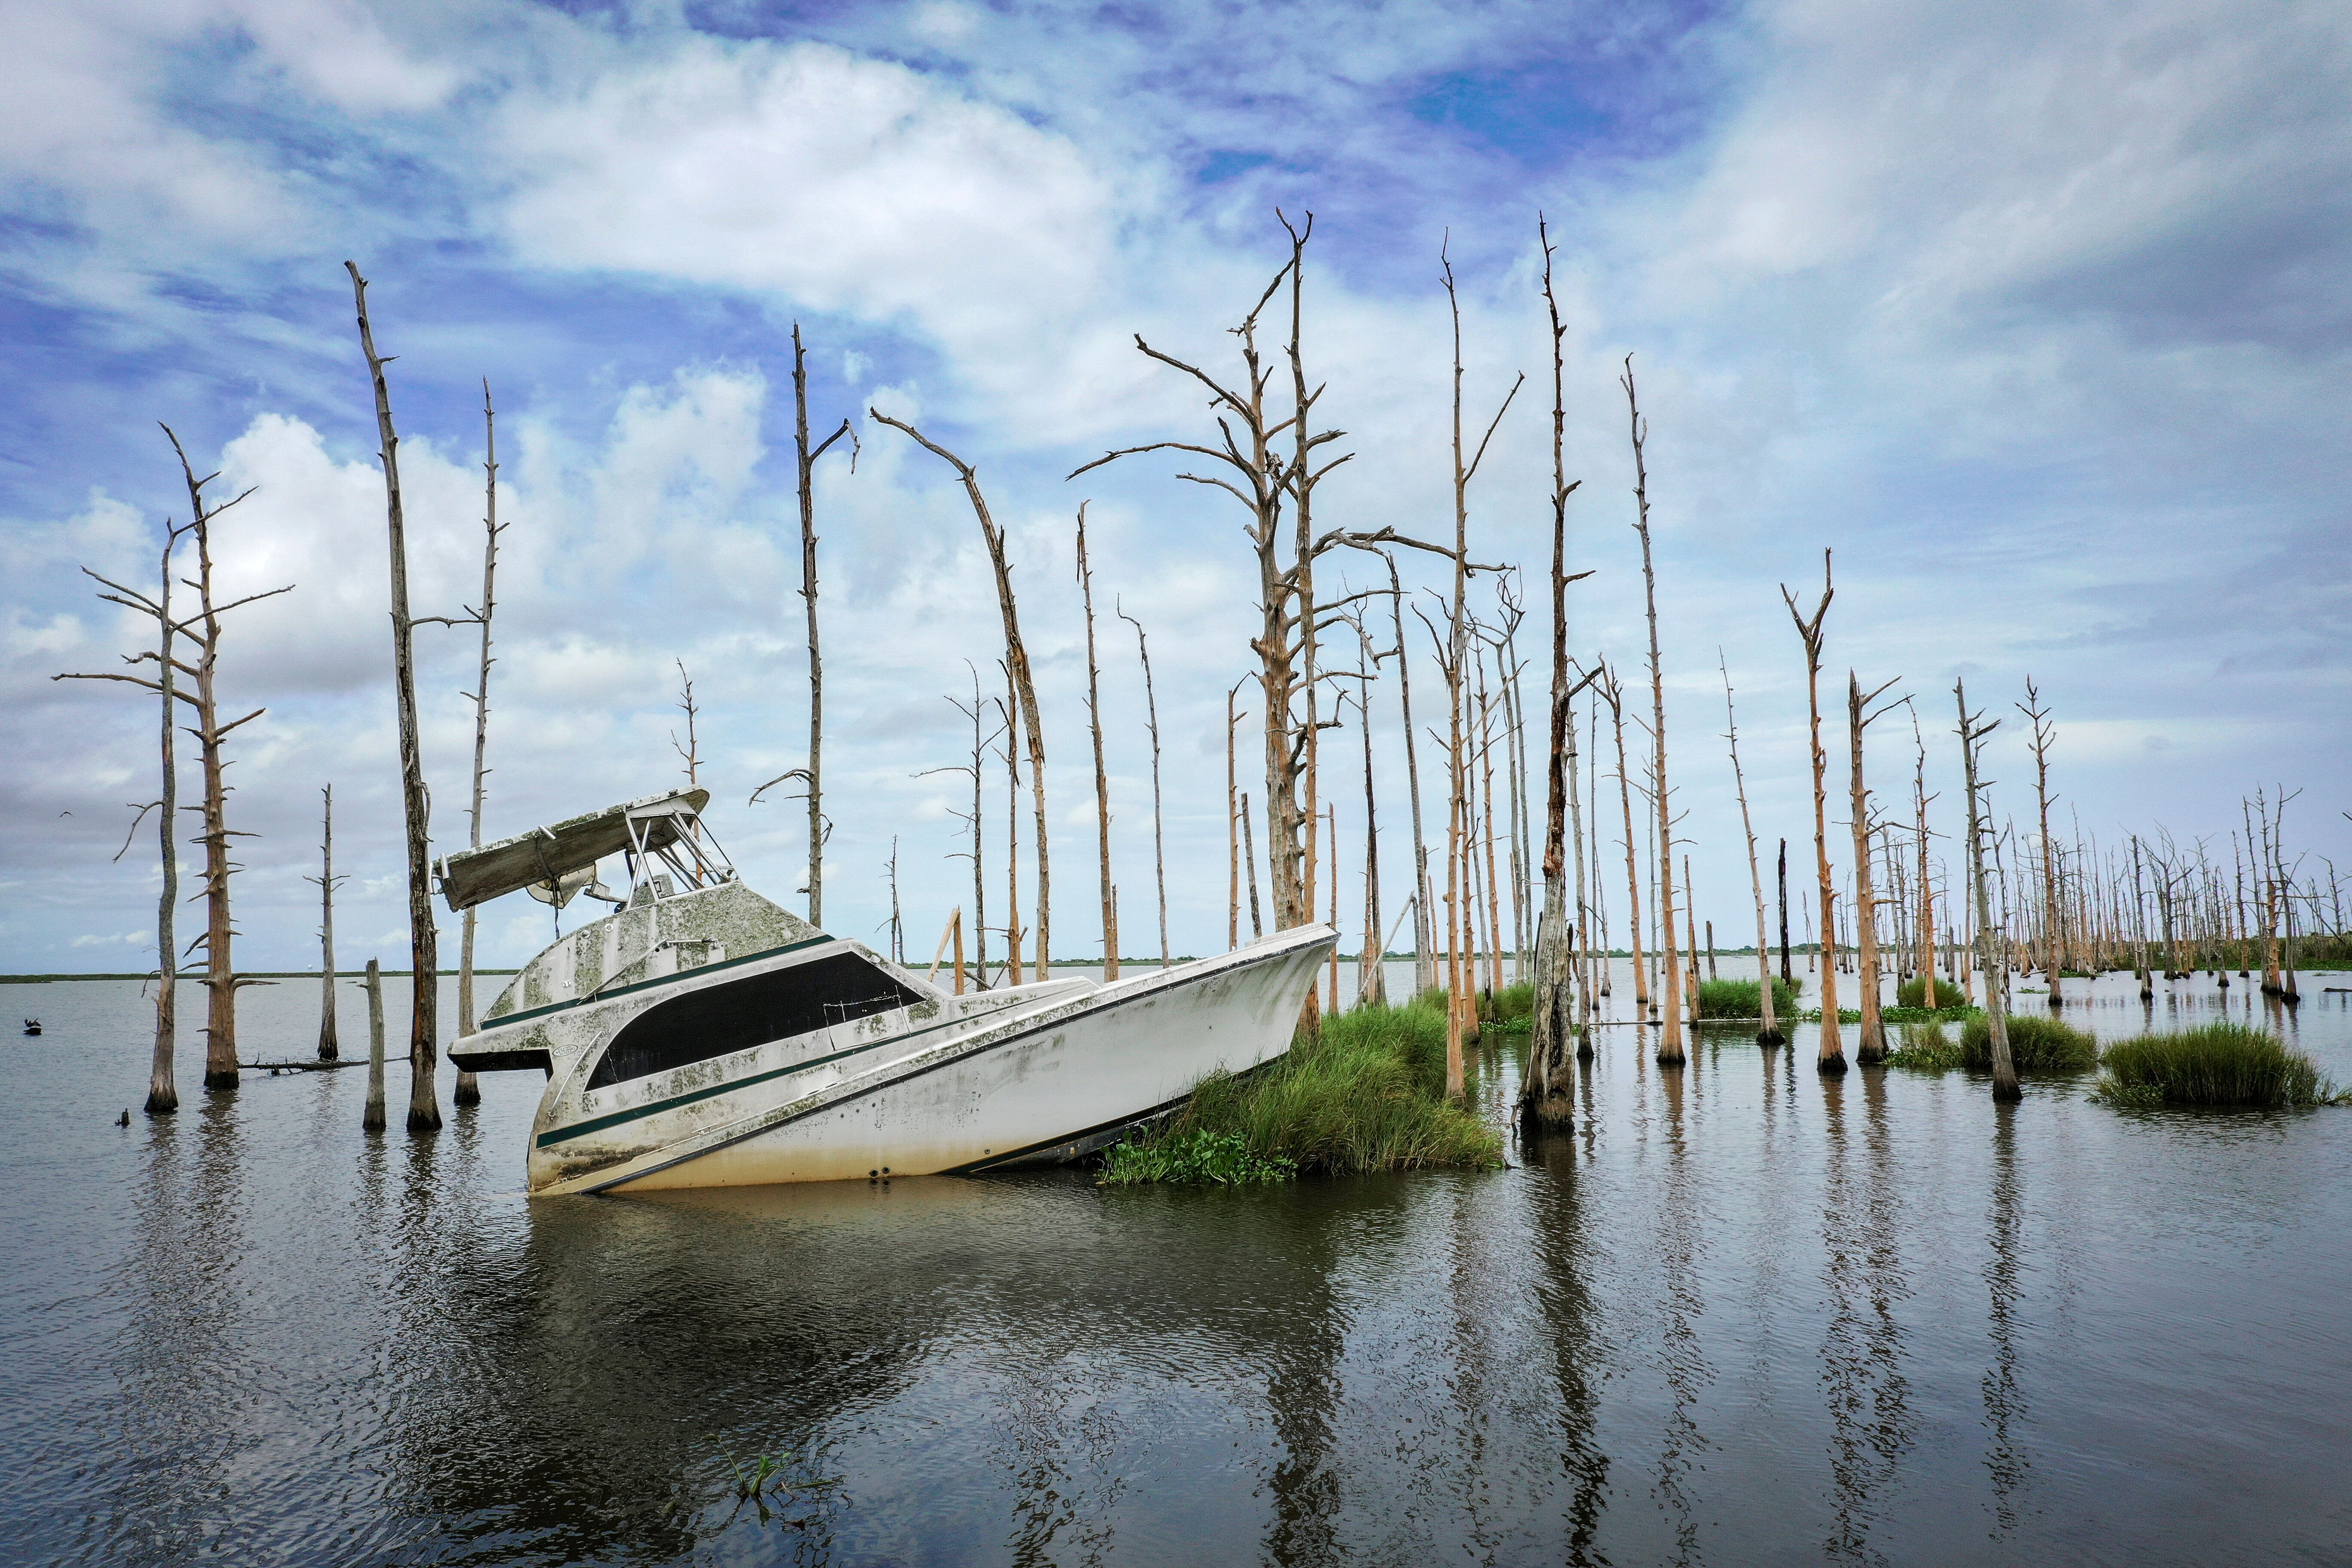 An abandoned boat sitsamid dead cypresses in coastal waters off Venice, Louisiana, in August 2019. Many oaks and cypress tree